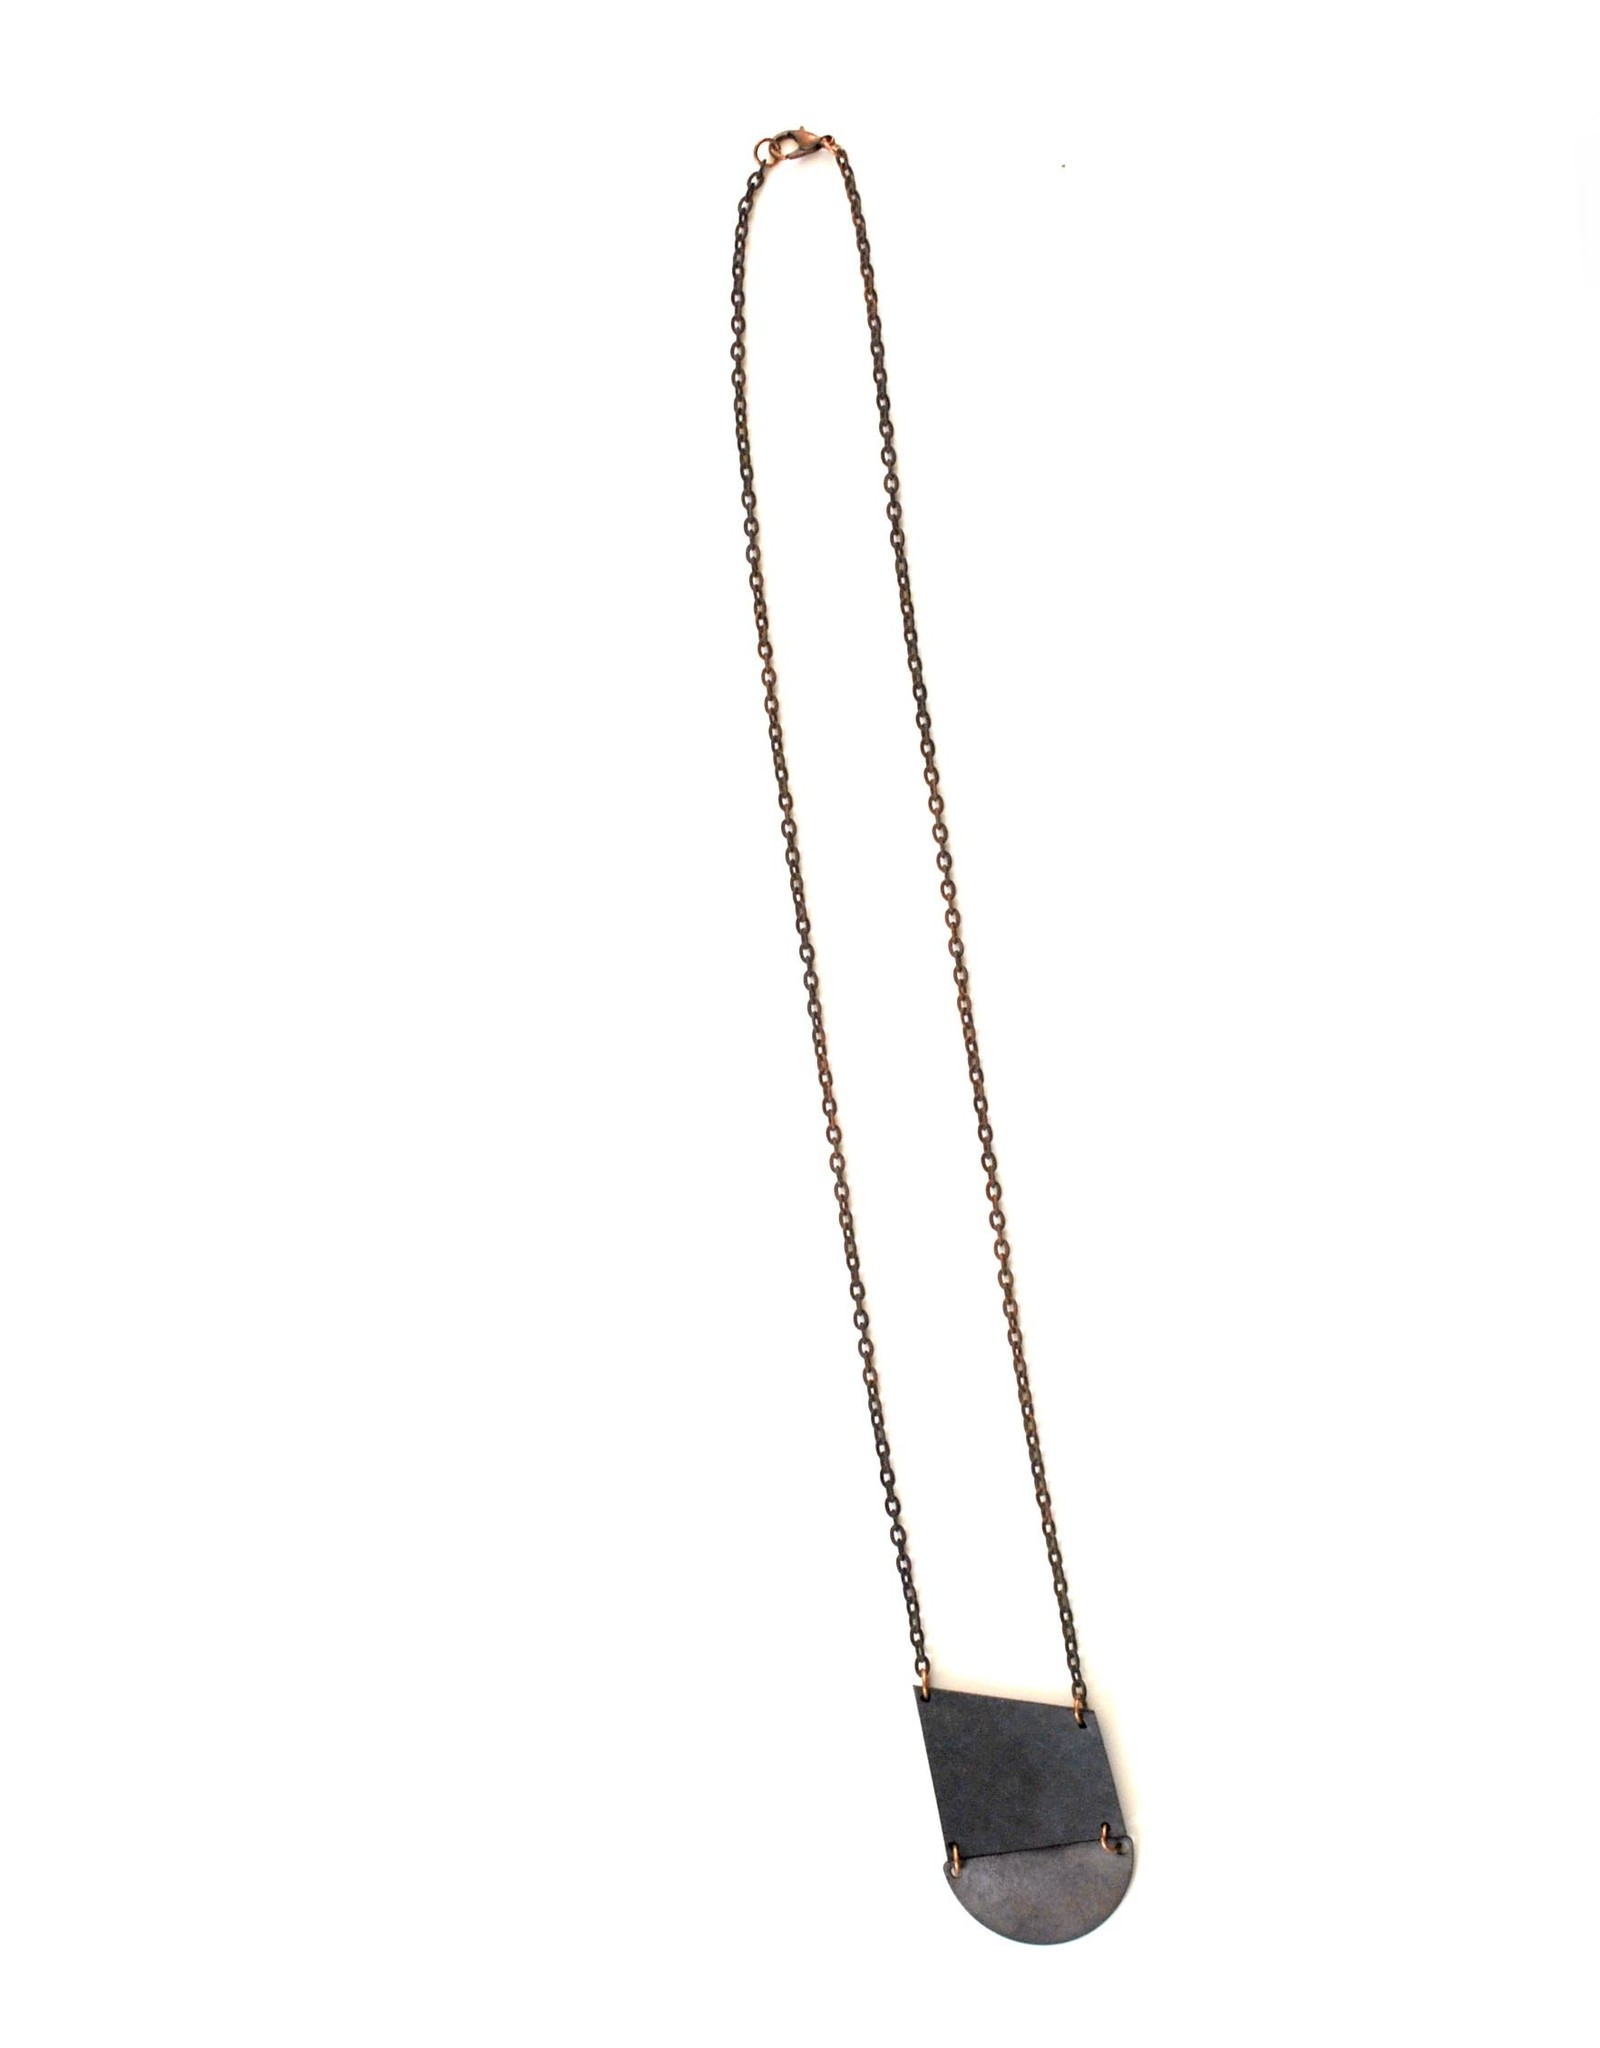 True Partners in Craft Half Moon Necklace by True Partners in Craft